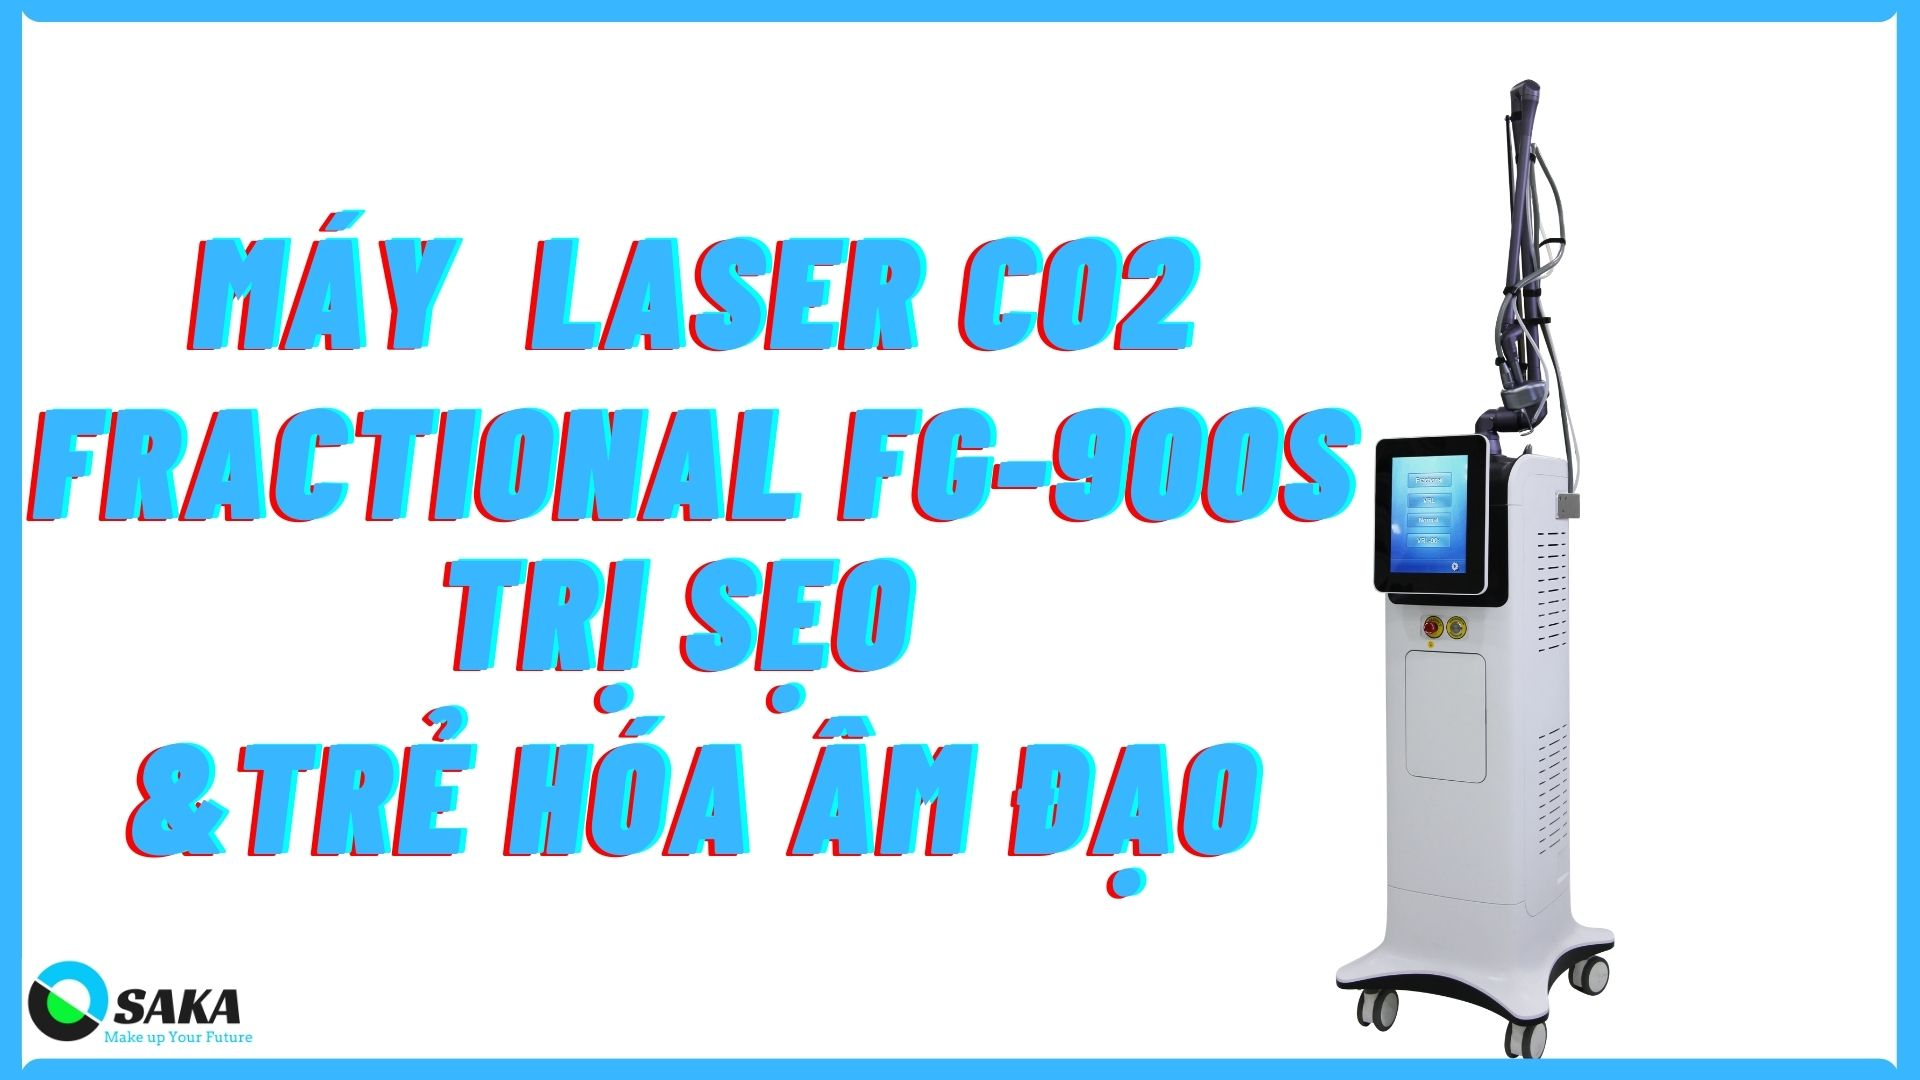 máy trị sẹo laser co2 fractional